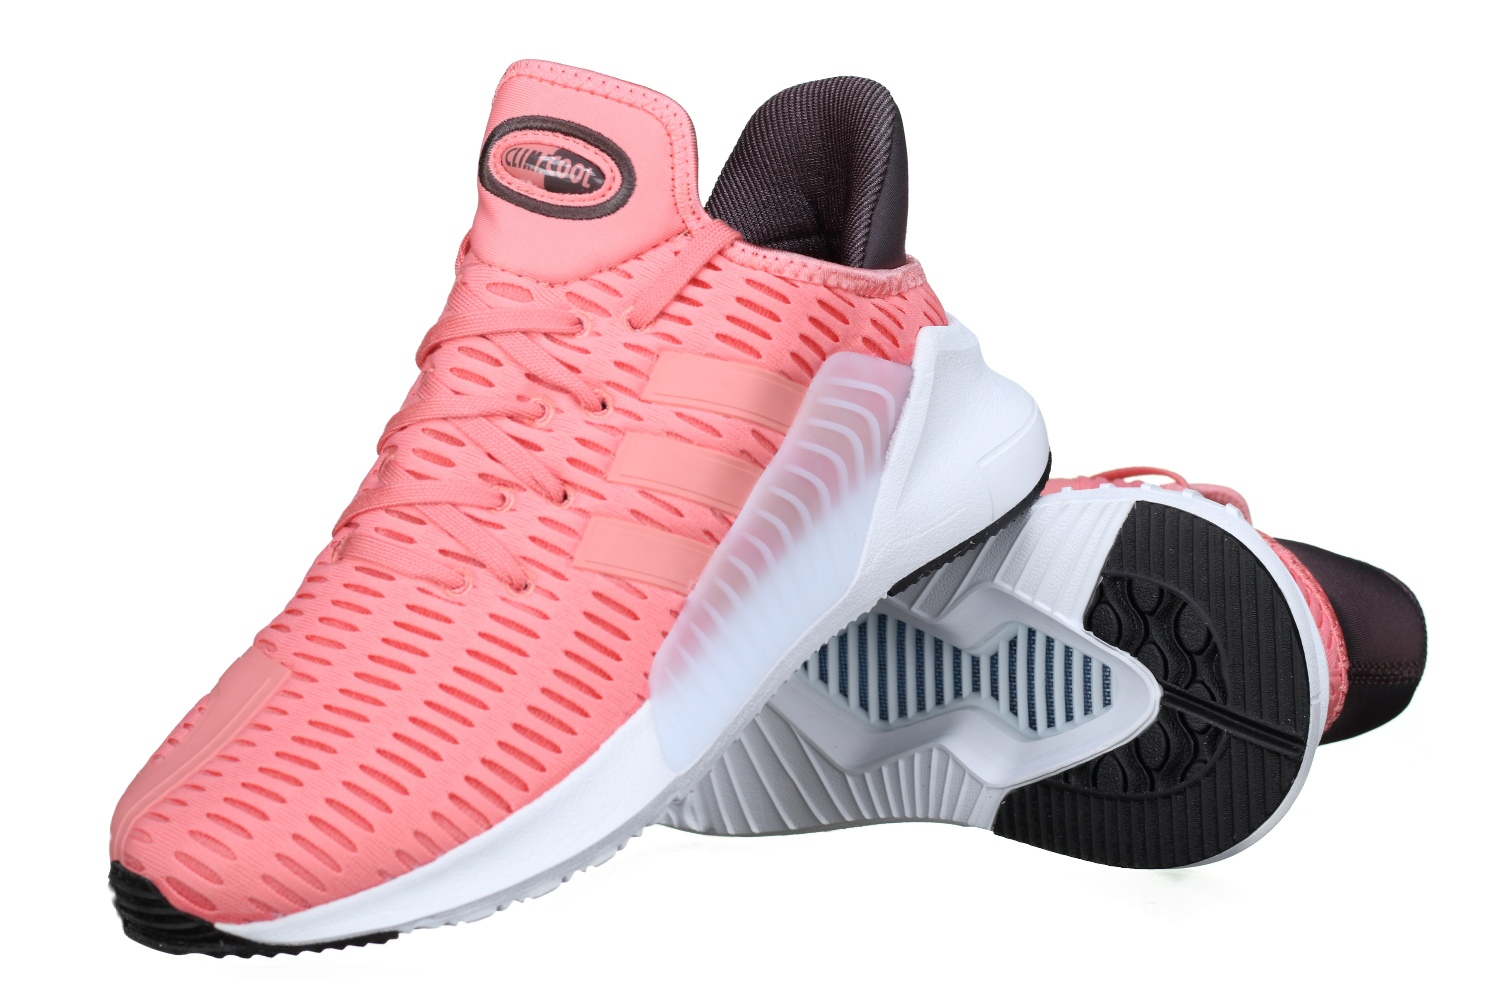 http://www.leadermode.com/133625/adidas-climacool-02-17-w-by9294-rose.jpg